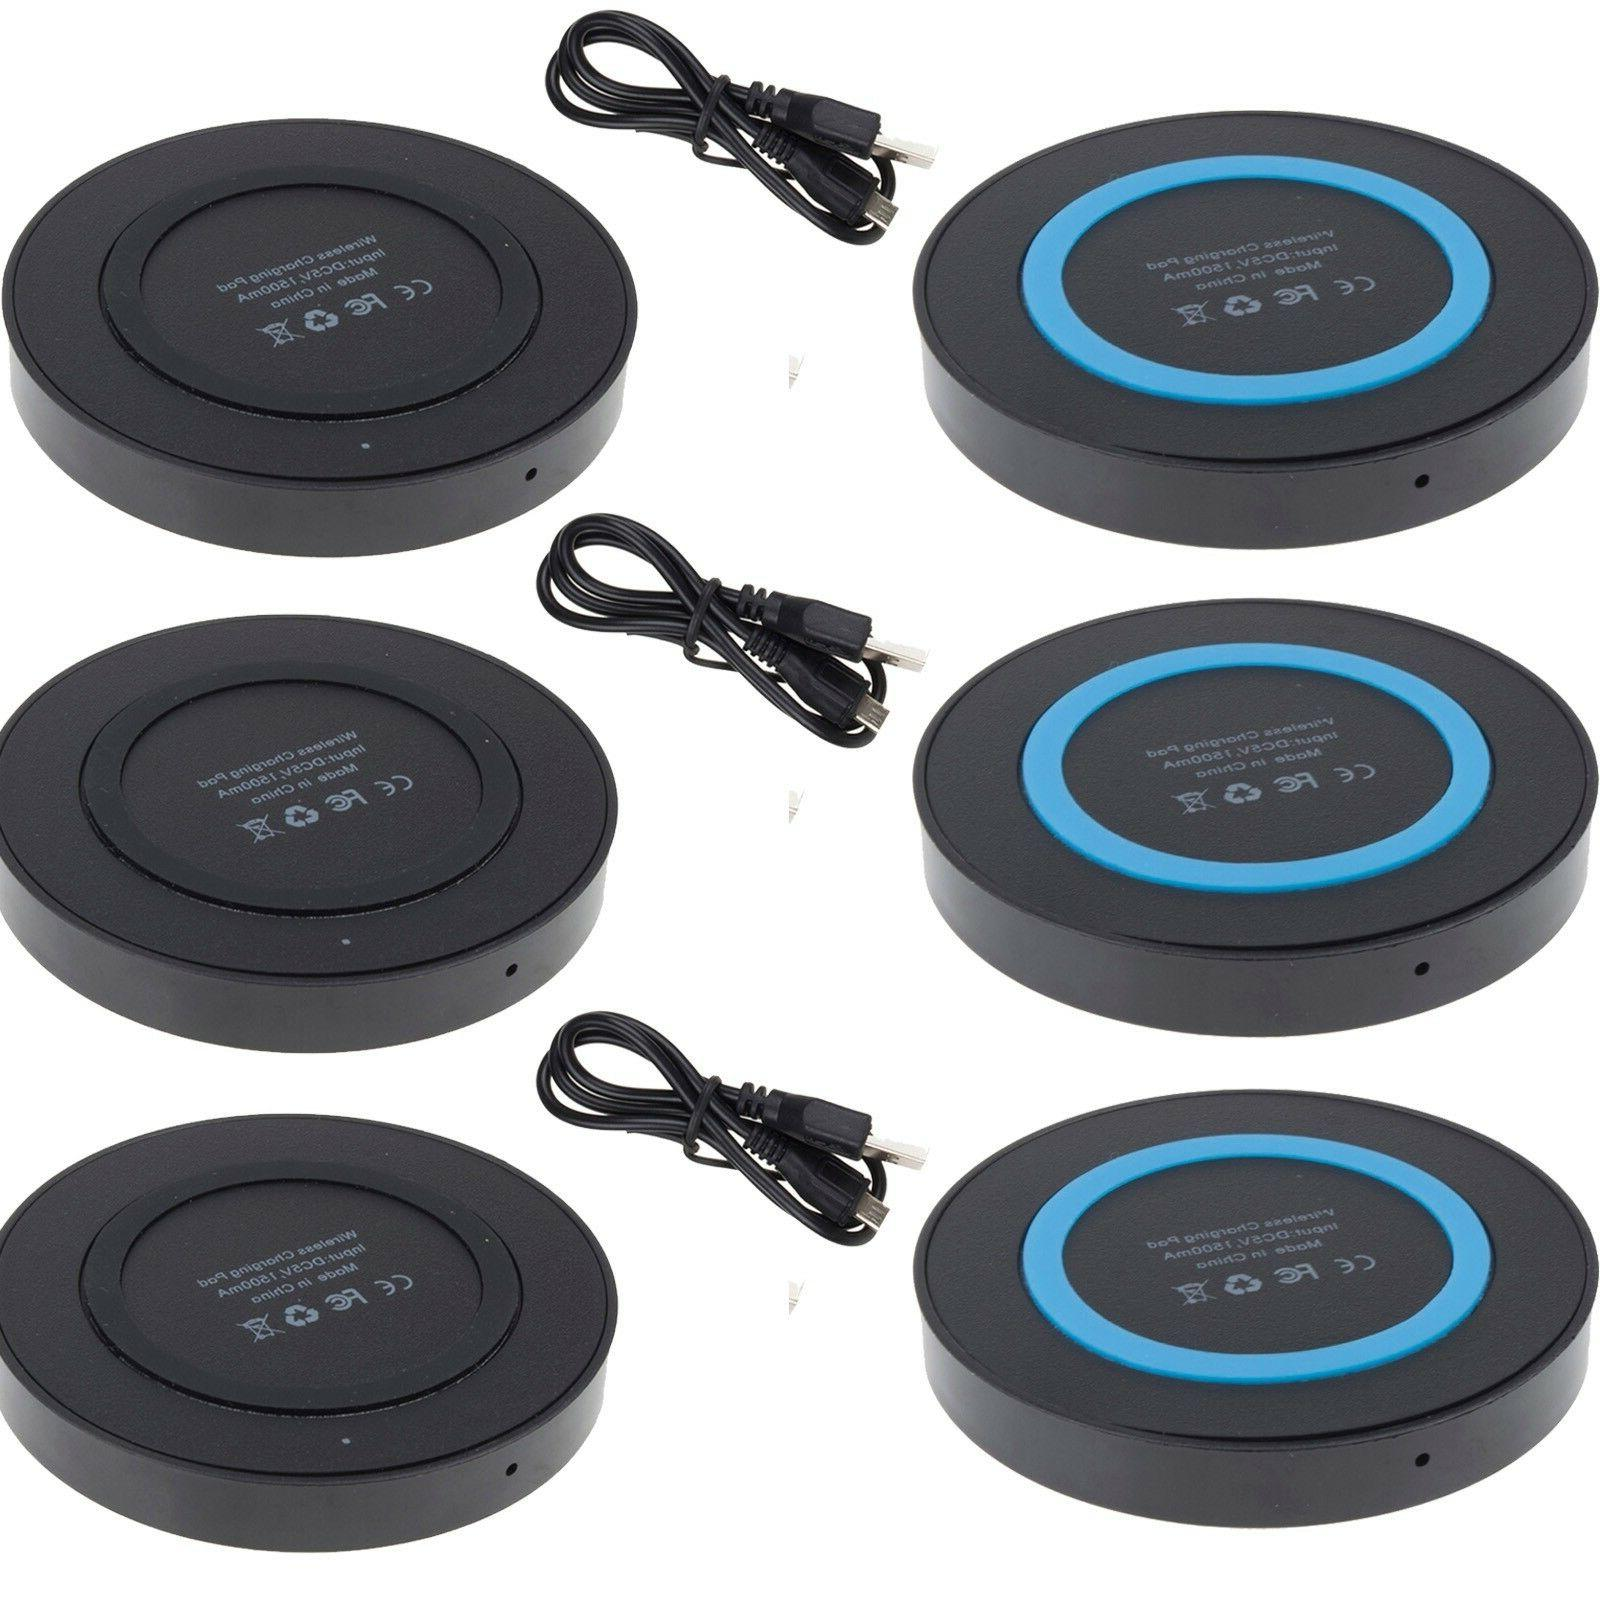 3pack qi wireless charger pad adapter